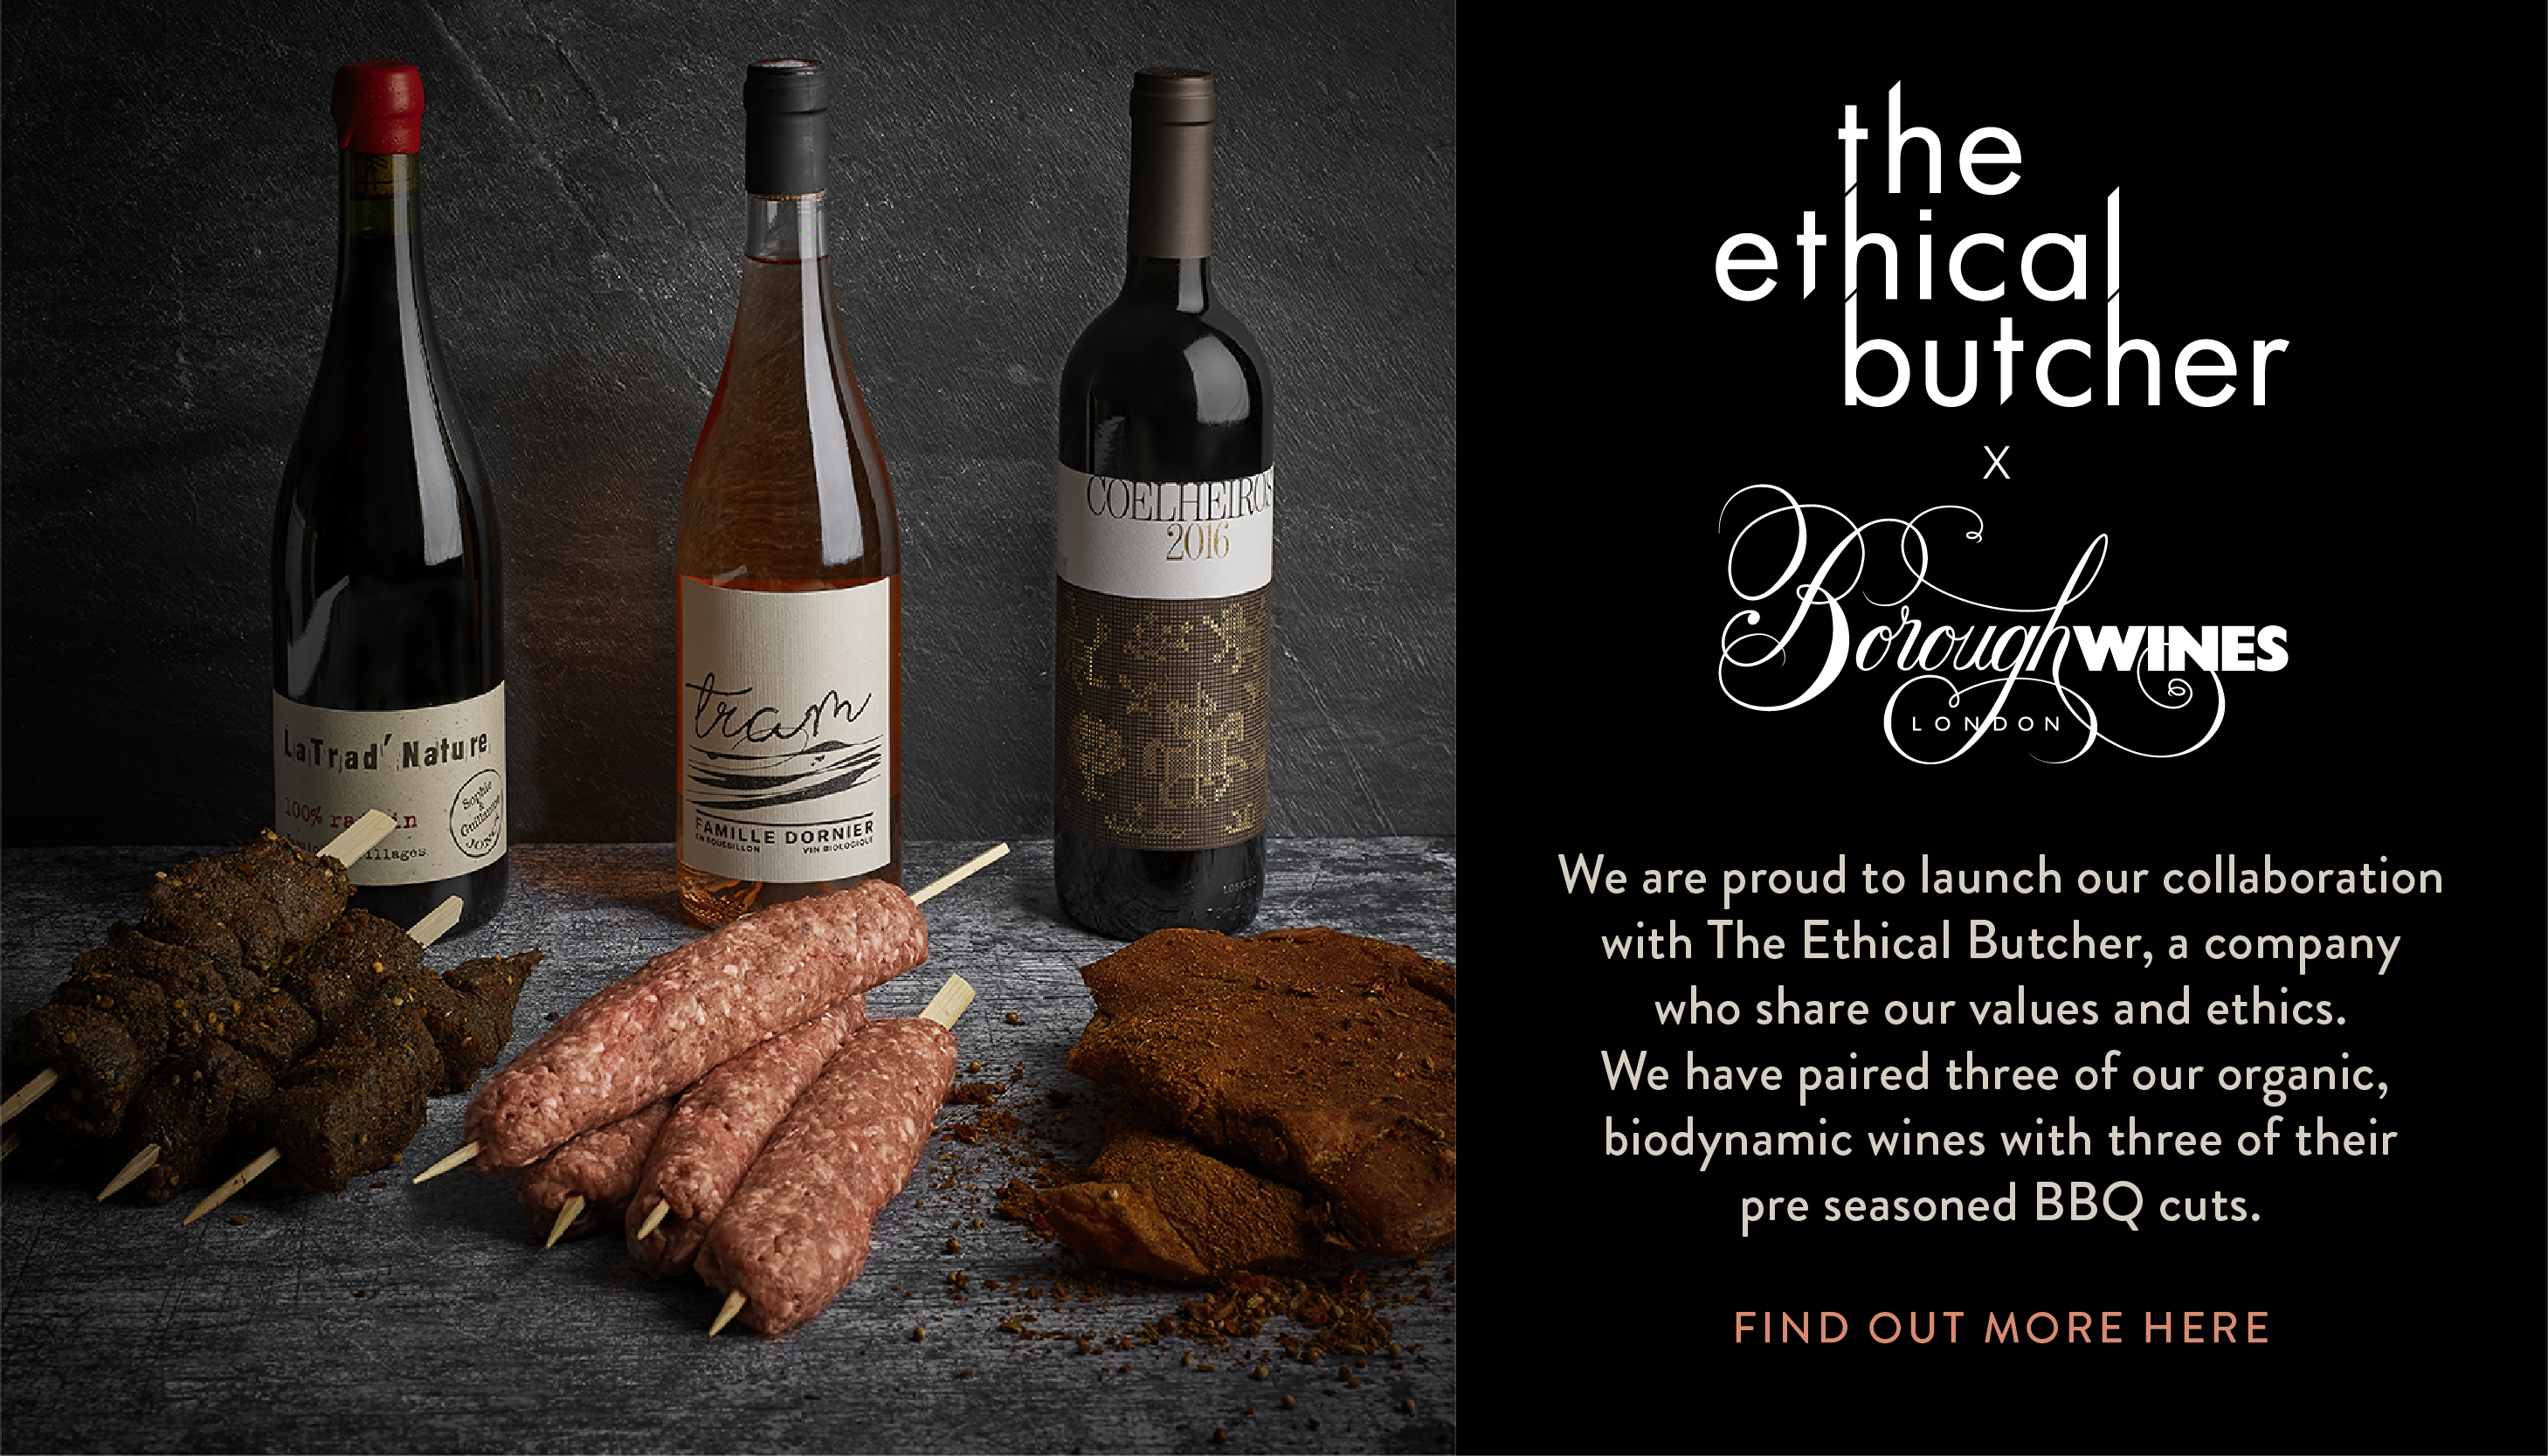 Ethical Butcher x Borough Wines